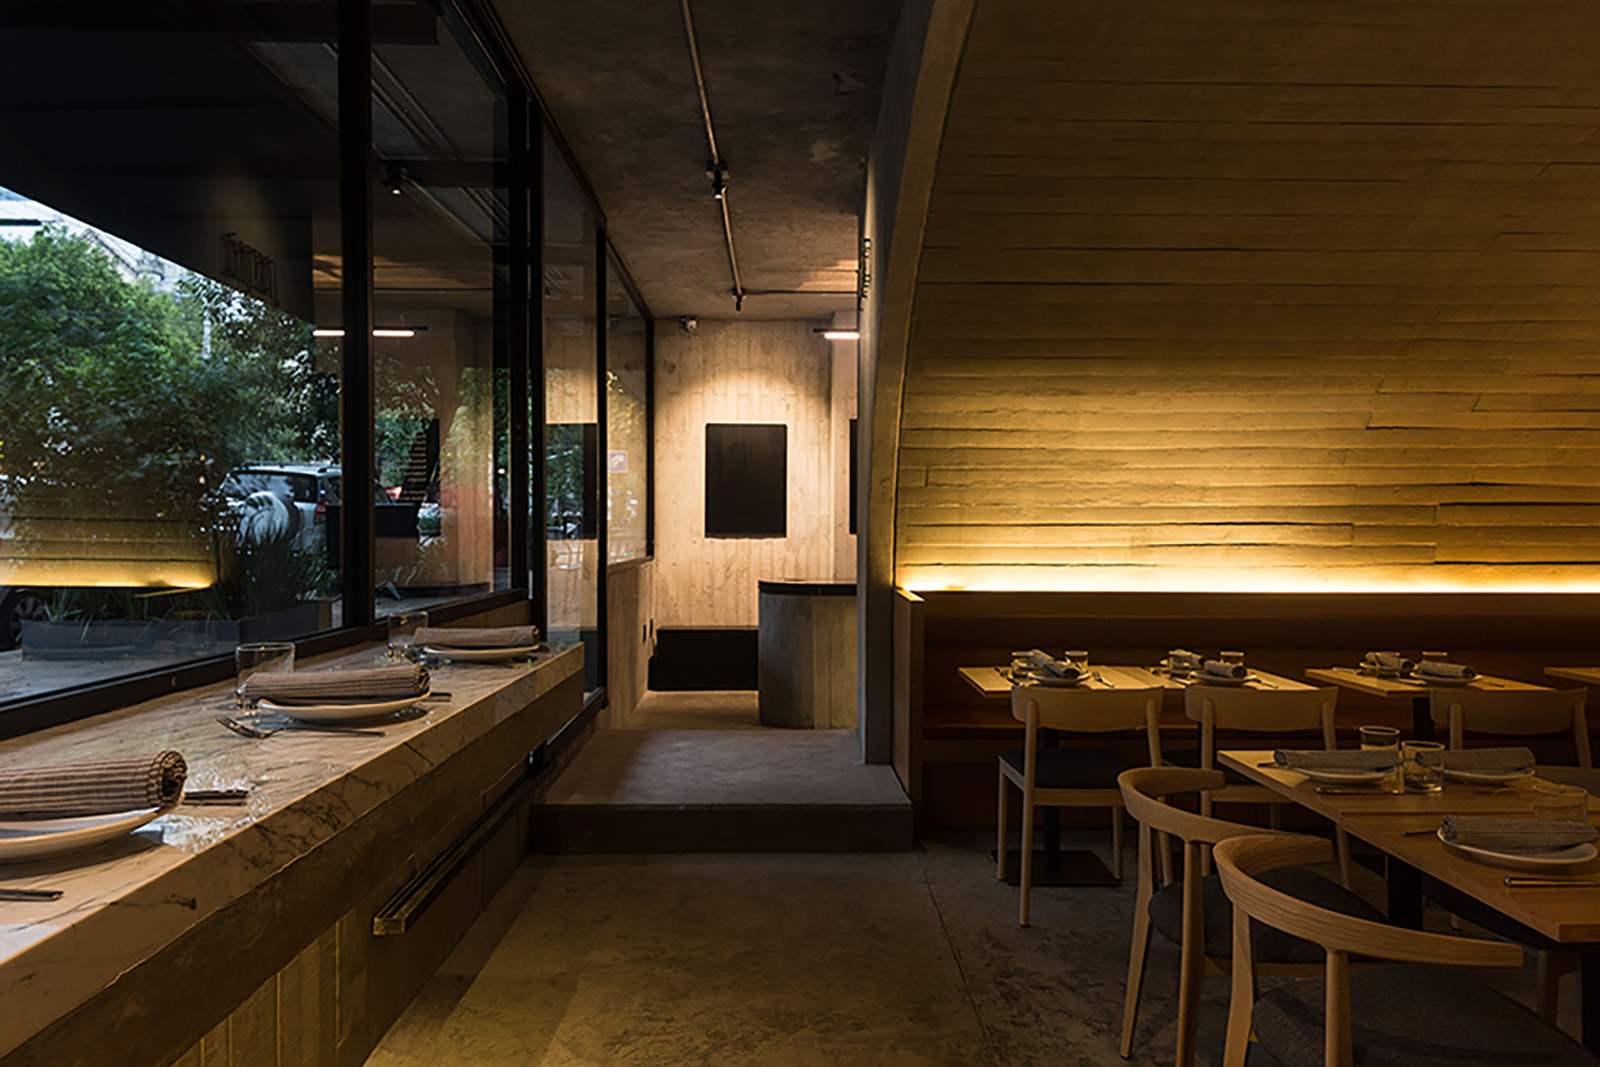 Sartoria offers a contemporary take on Europe's vaulted taverns, serving fresh pasta inside a glowing concrete tunnel in Mexico City's Roma Norte neighbourhood.